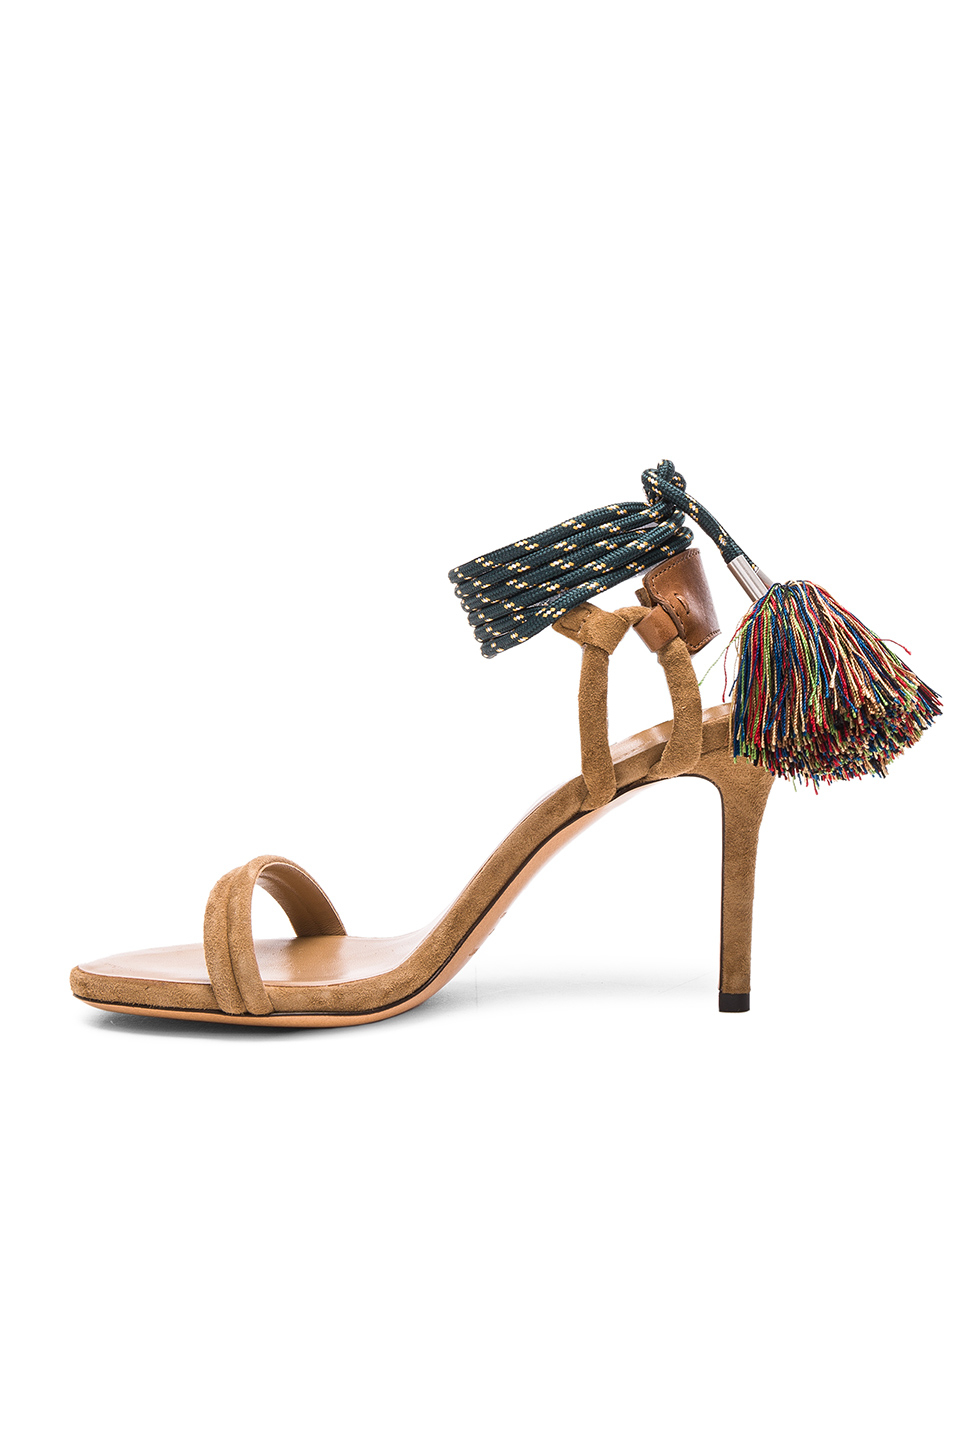 Isabel Marant Aura Wraparound Sandals free shipping great deals OQck77GyB